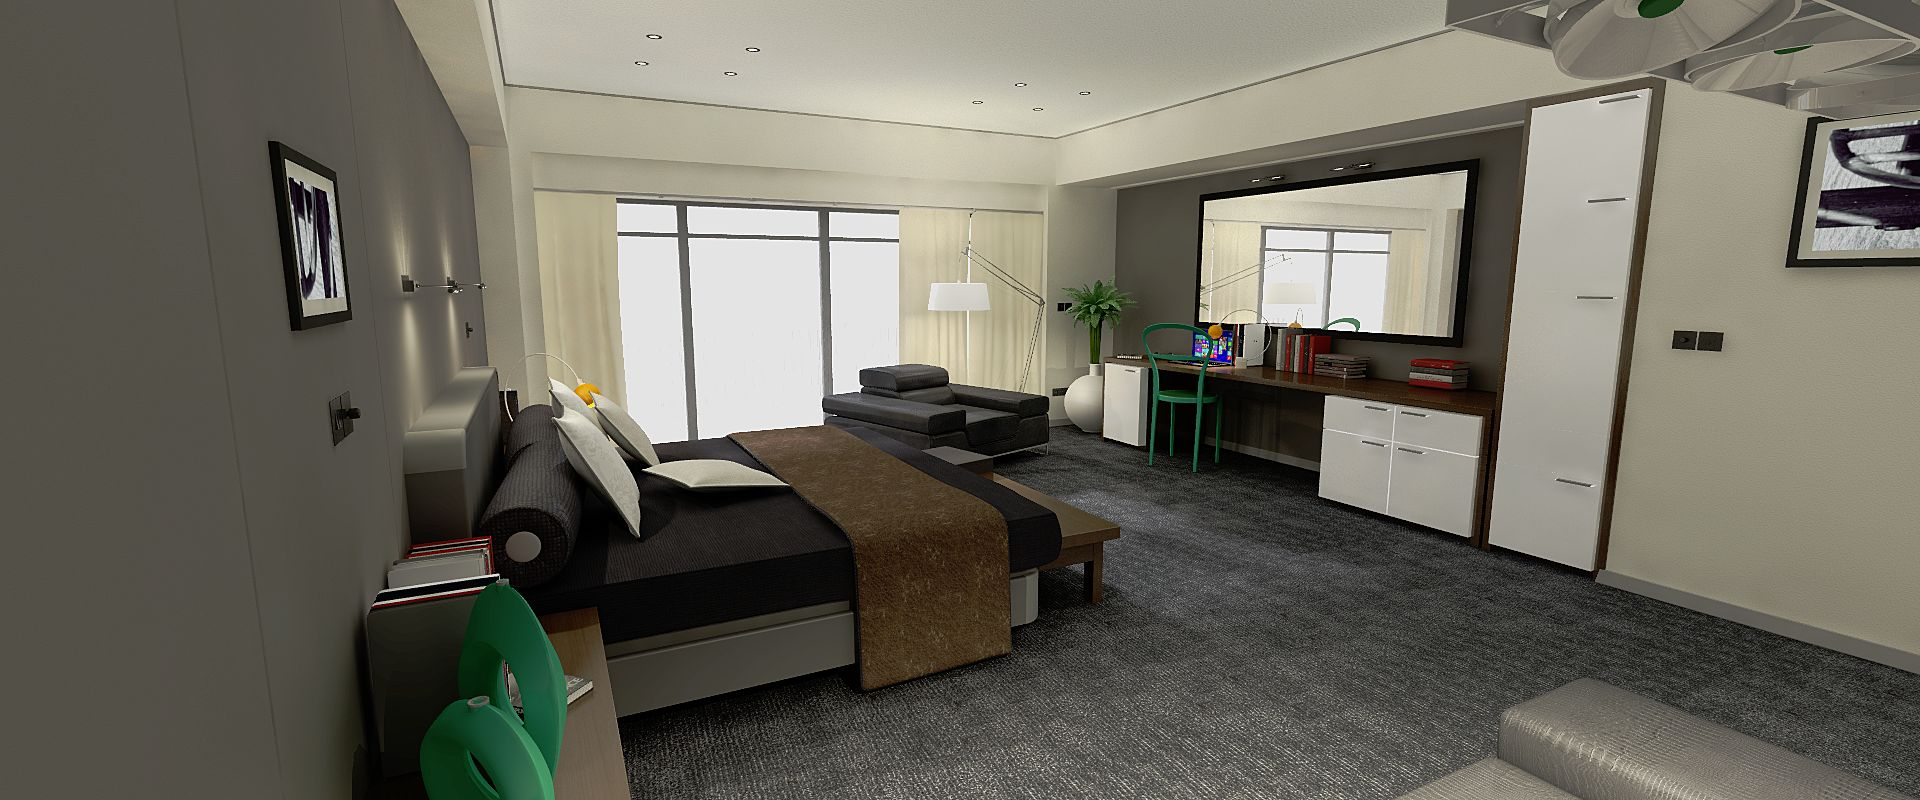 Dosch design 3d models textures hdri audio and viz images for Furniture for hotel rooms